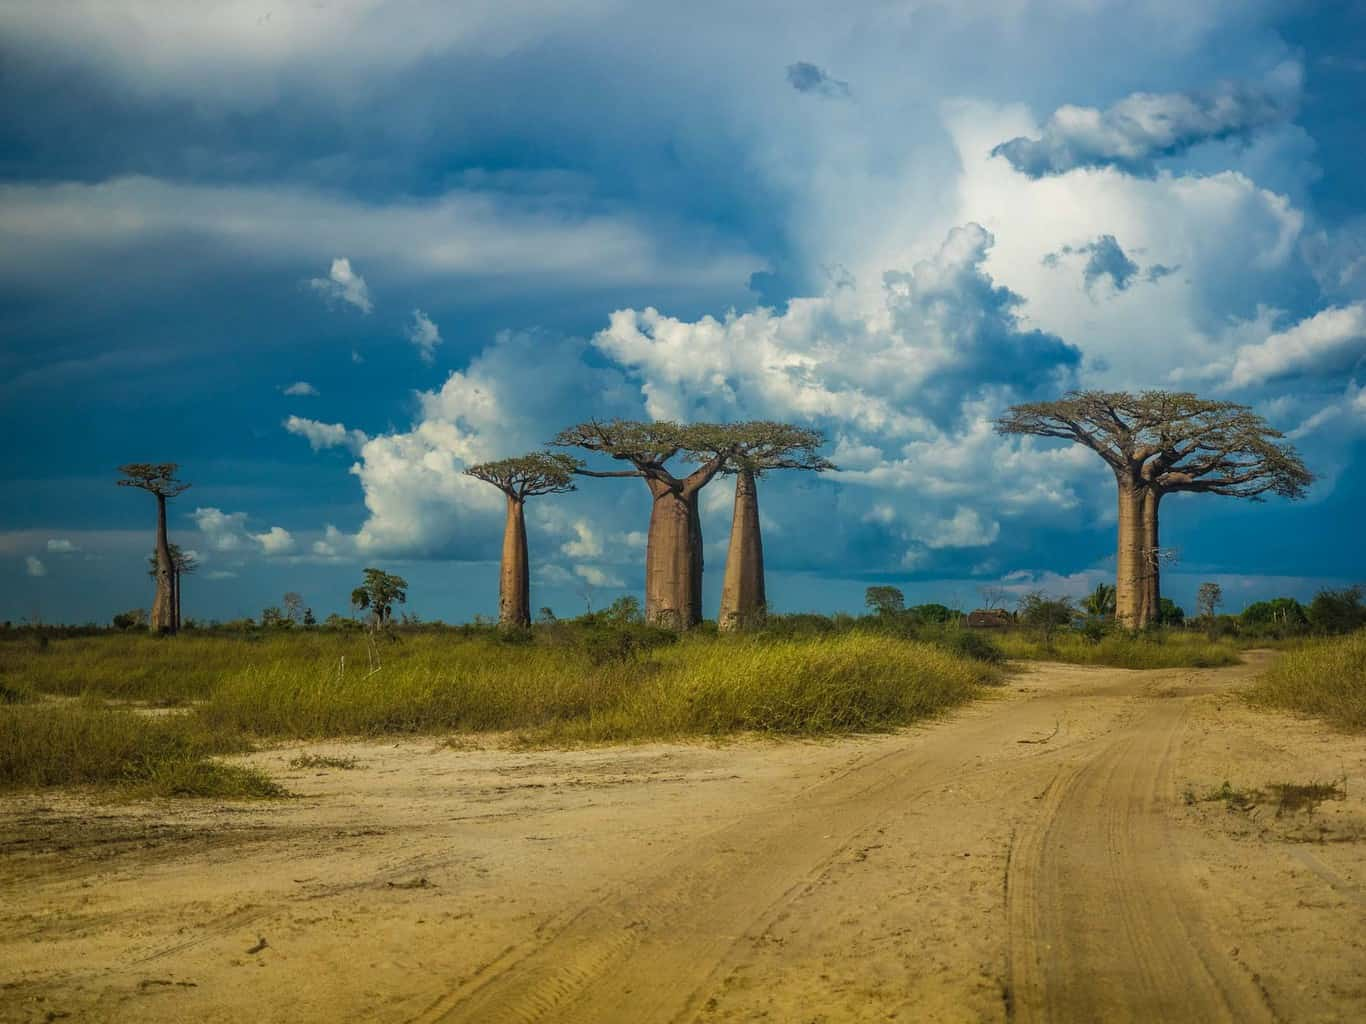 Not many baobab trees in this area in Madagascar